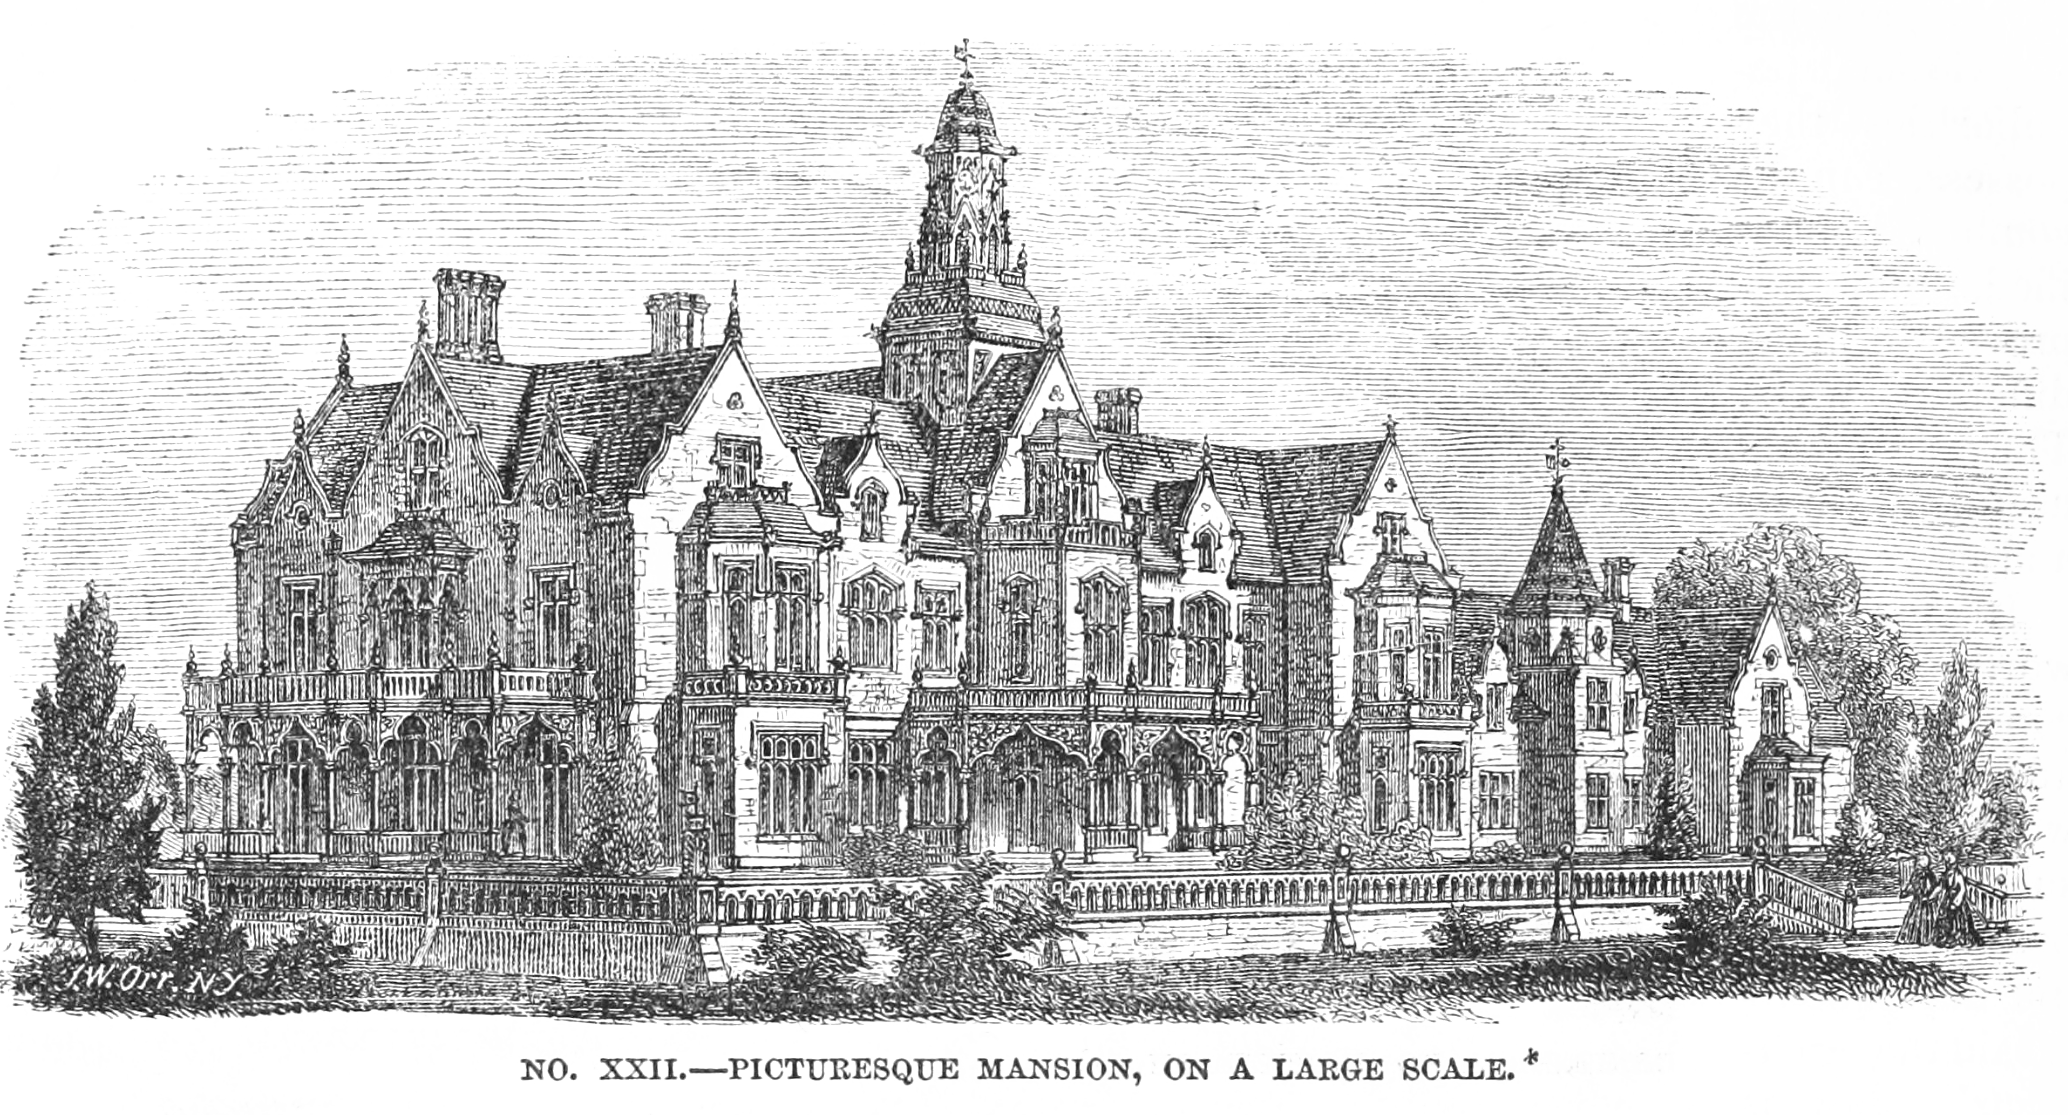 FileDesign For A Picturesque Mansion On Large Scale By Calvert Vaux Exterior